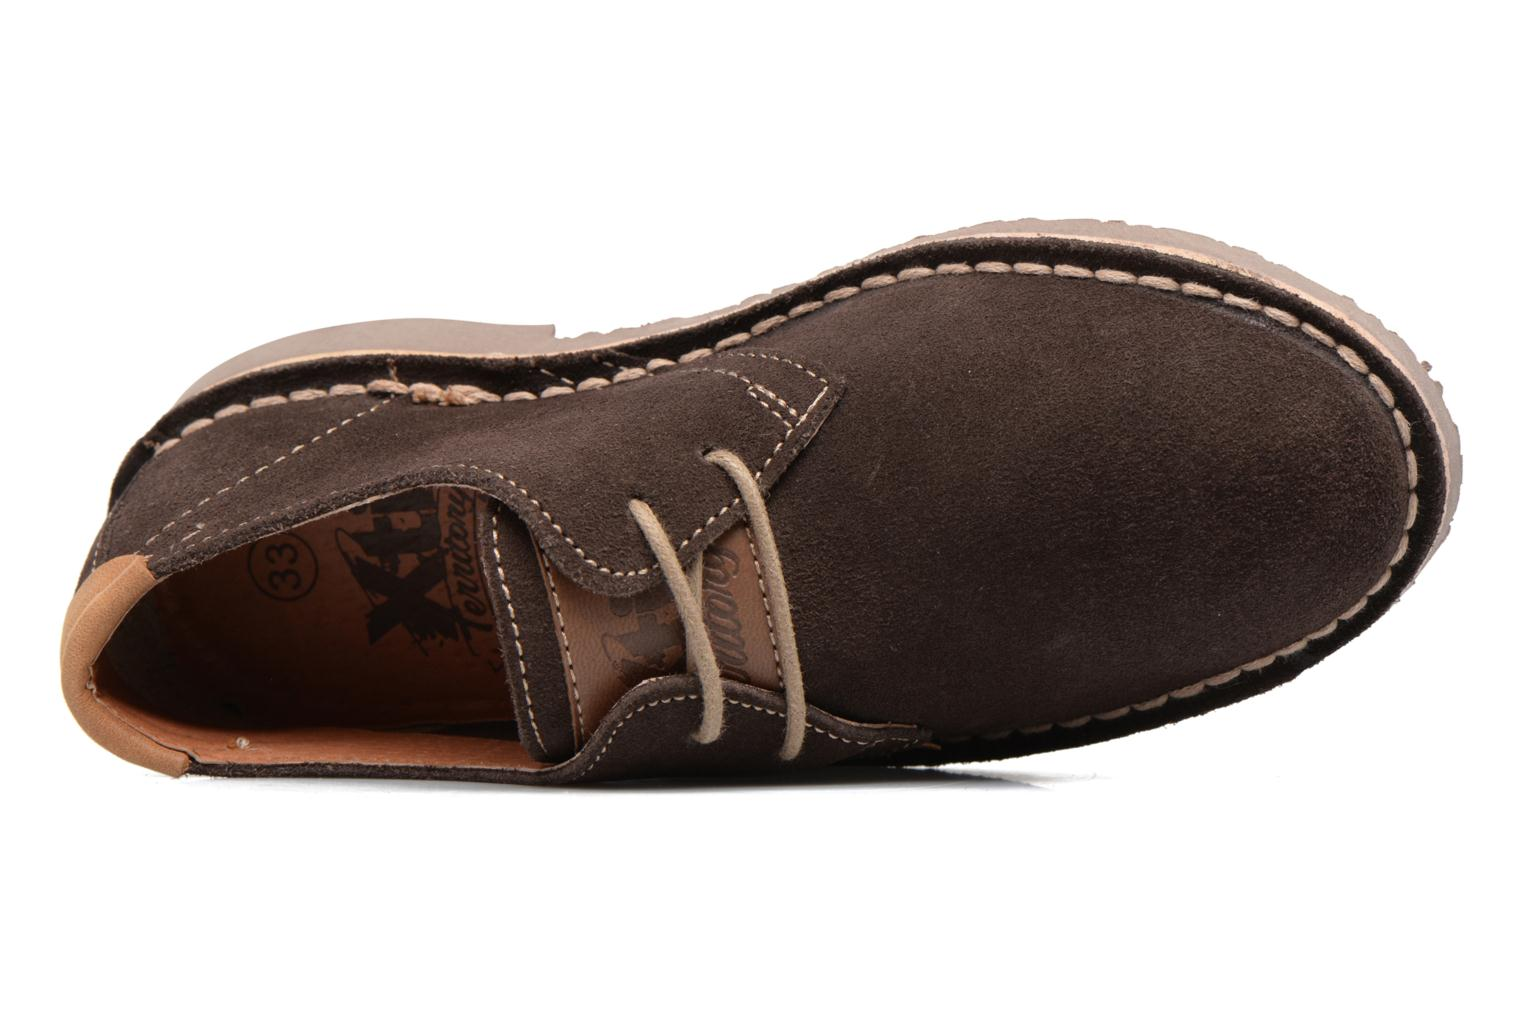 Constano 53949 Brown